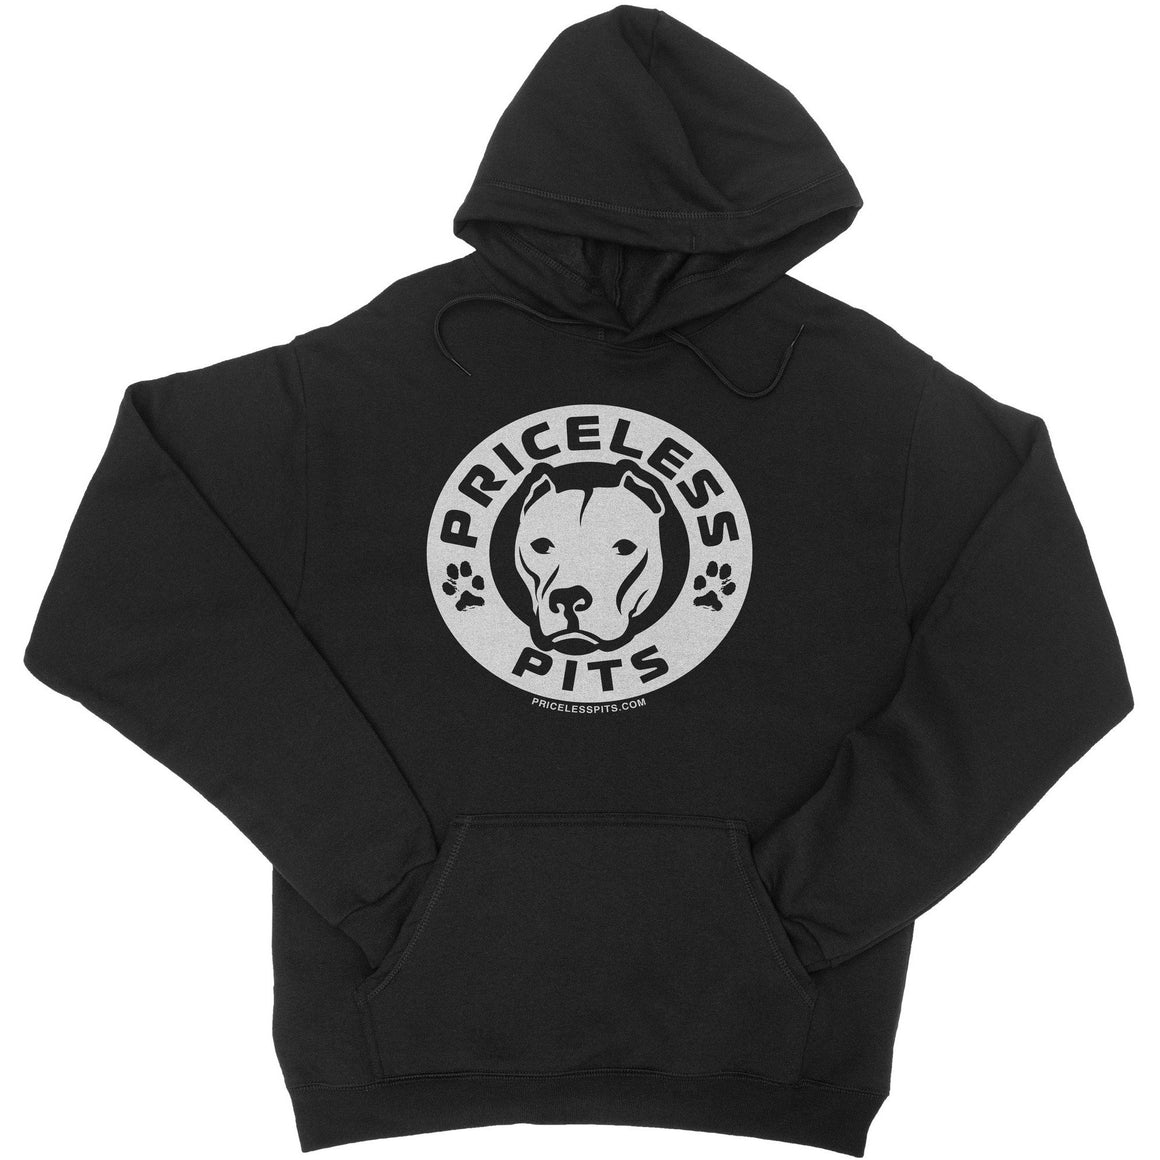 Priceless Pits Logo Black Pitbull Hoodie